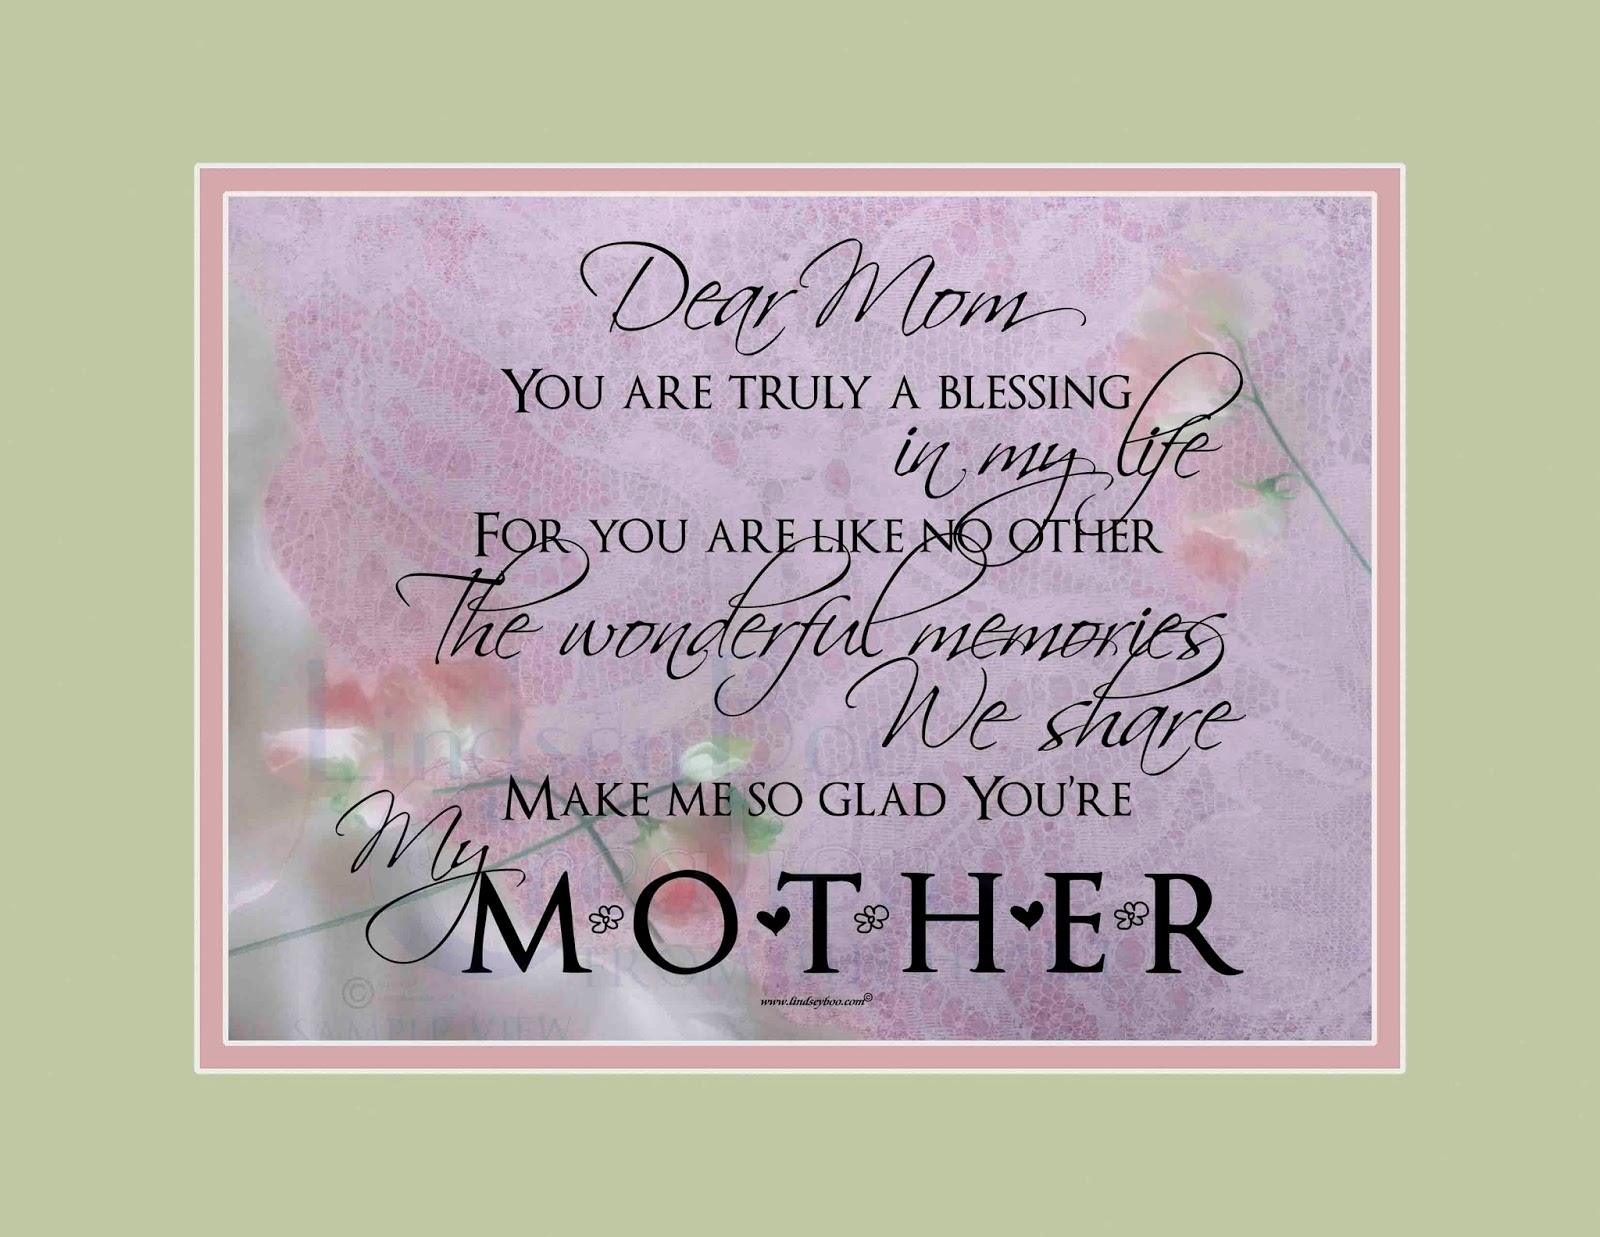 Dear Mom Poem Mother's day gifts